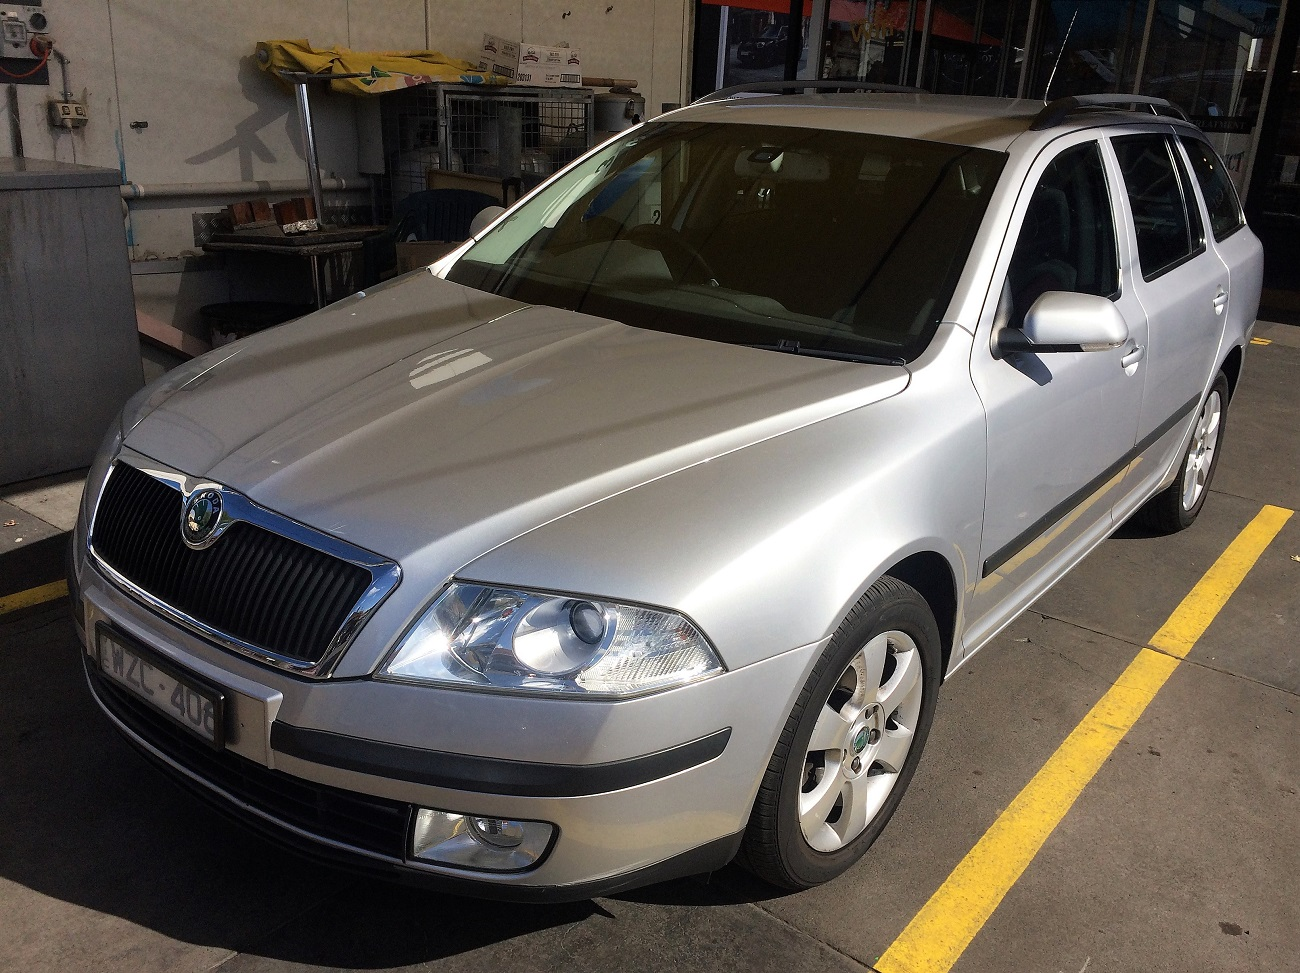 Picture of Francesco's 2009 Skoda Octavia